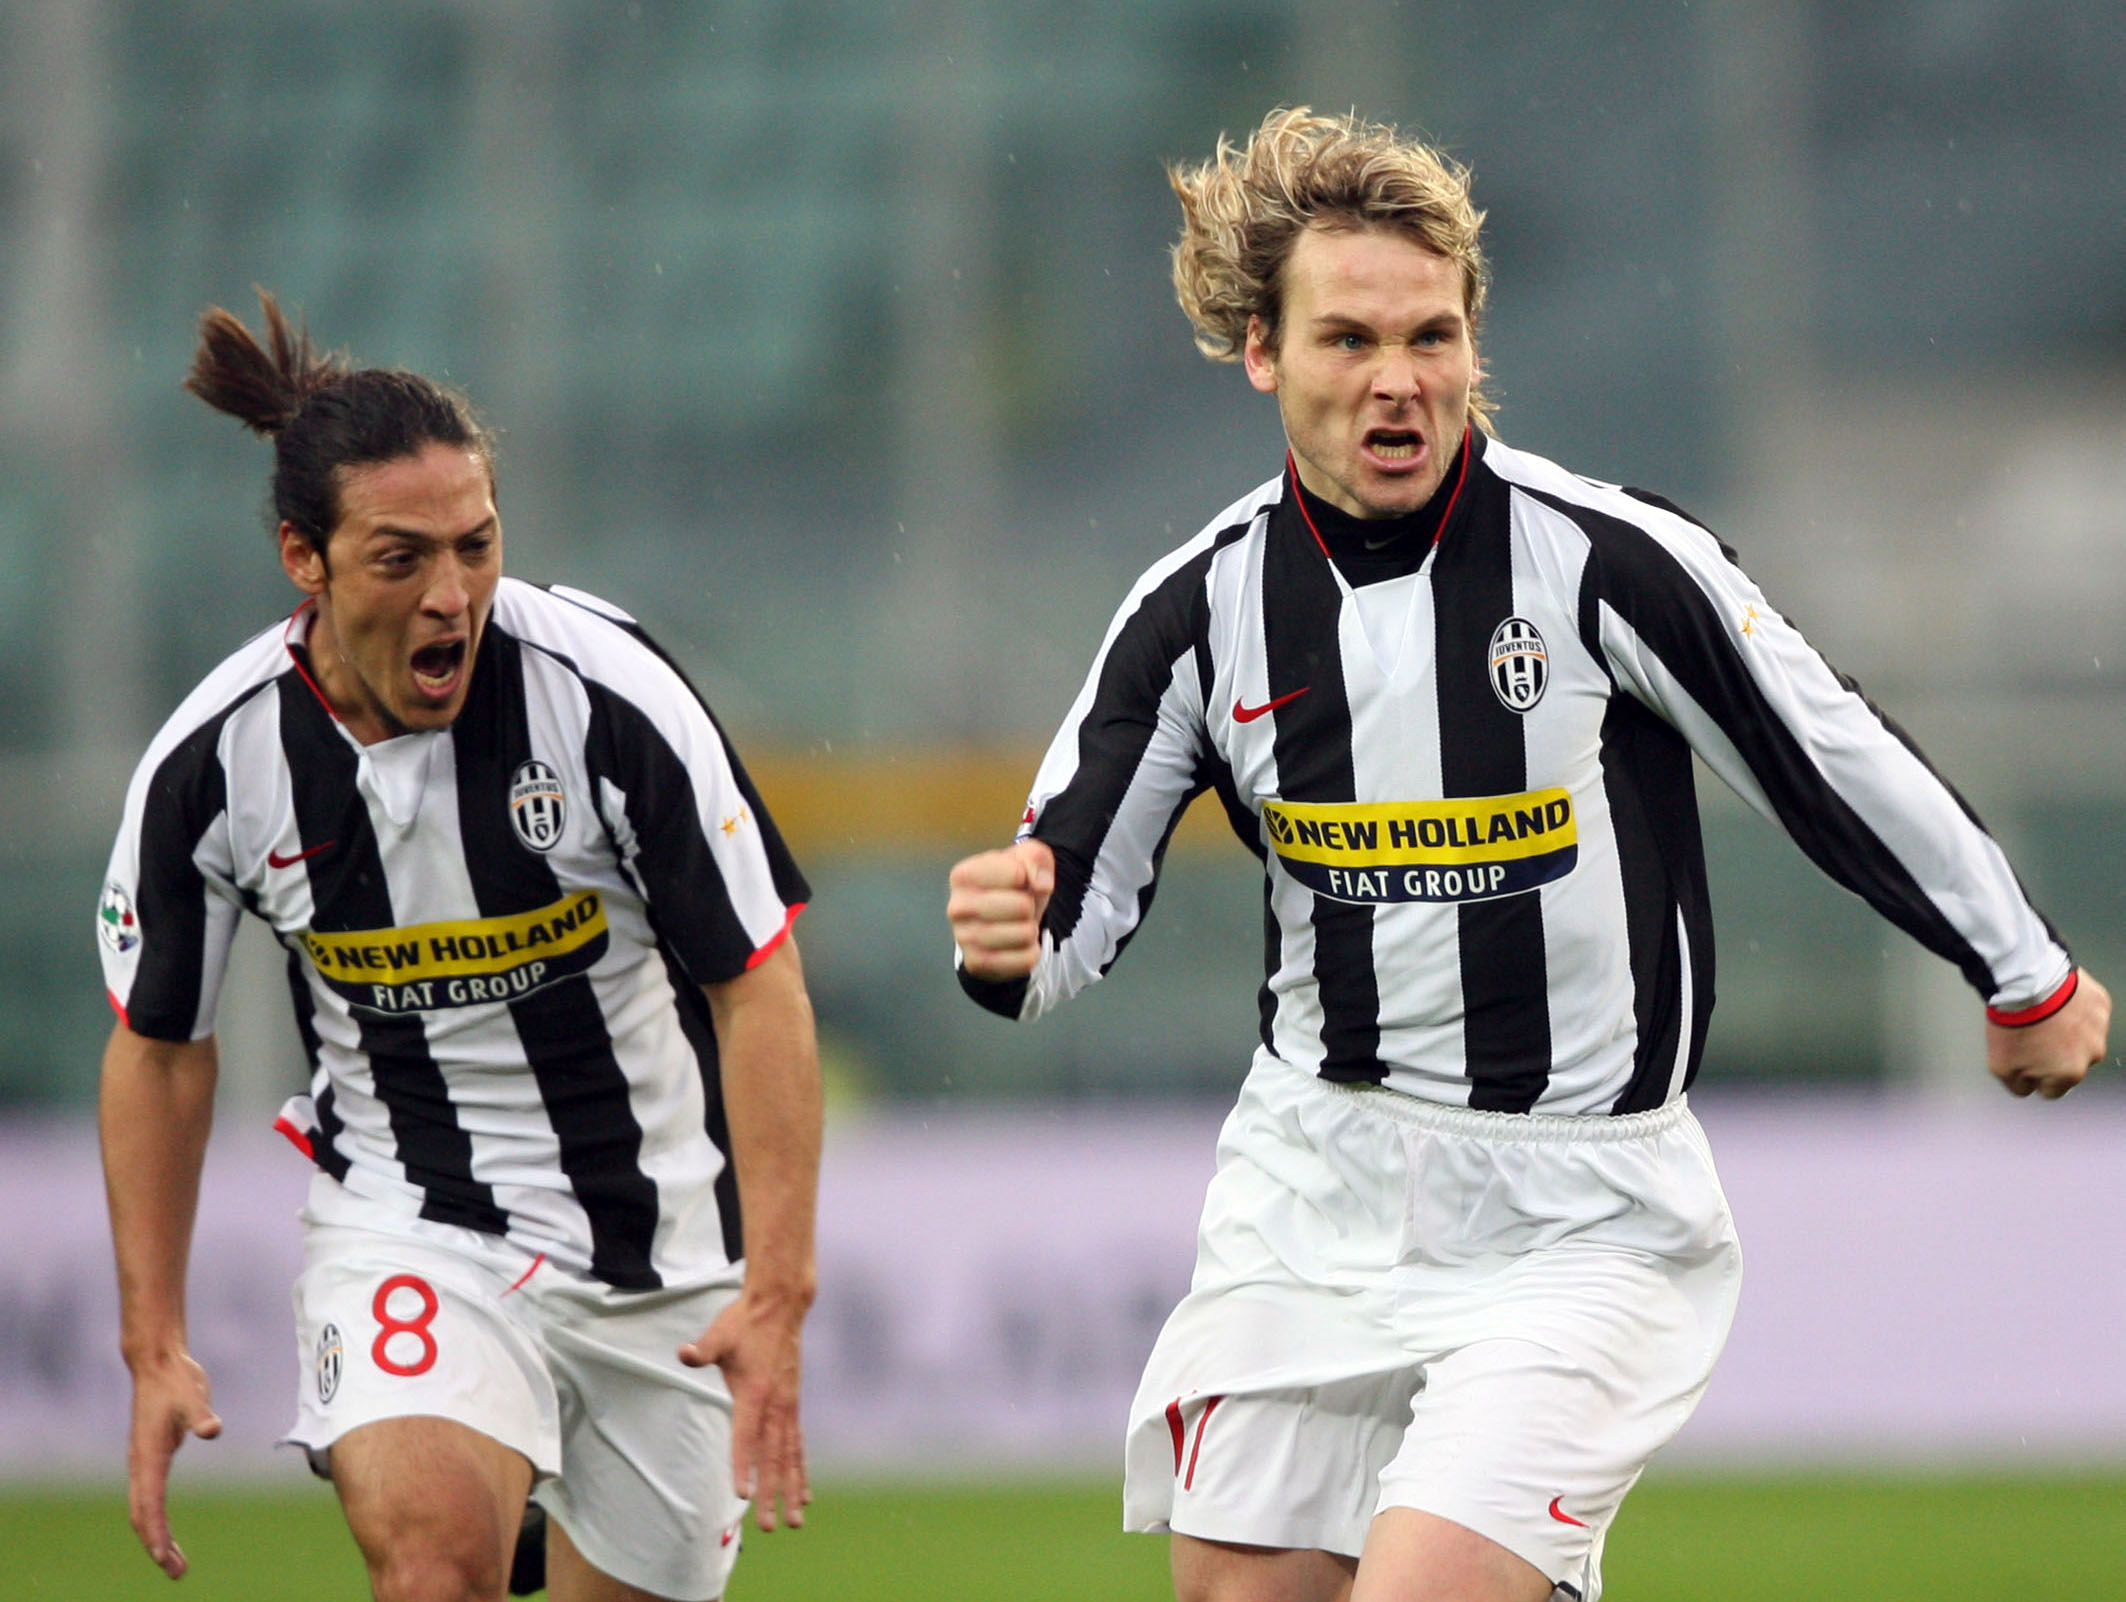 separation shoes a5dd1 575bb Top 10 Juventus jerseys down through the years - Photos ...